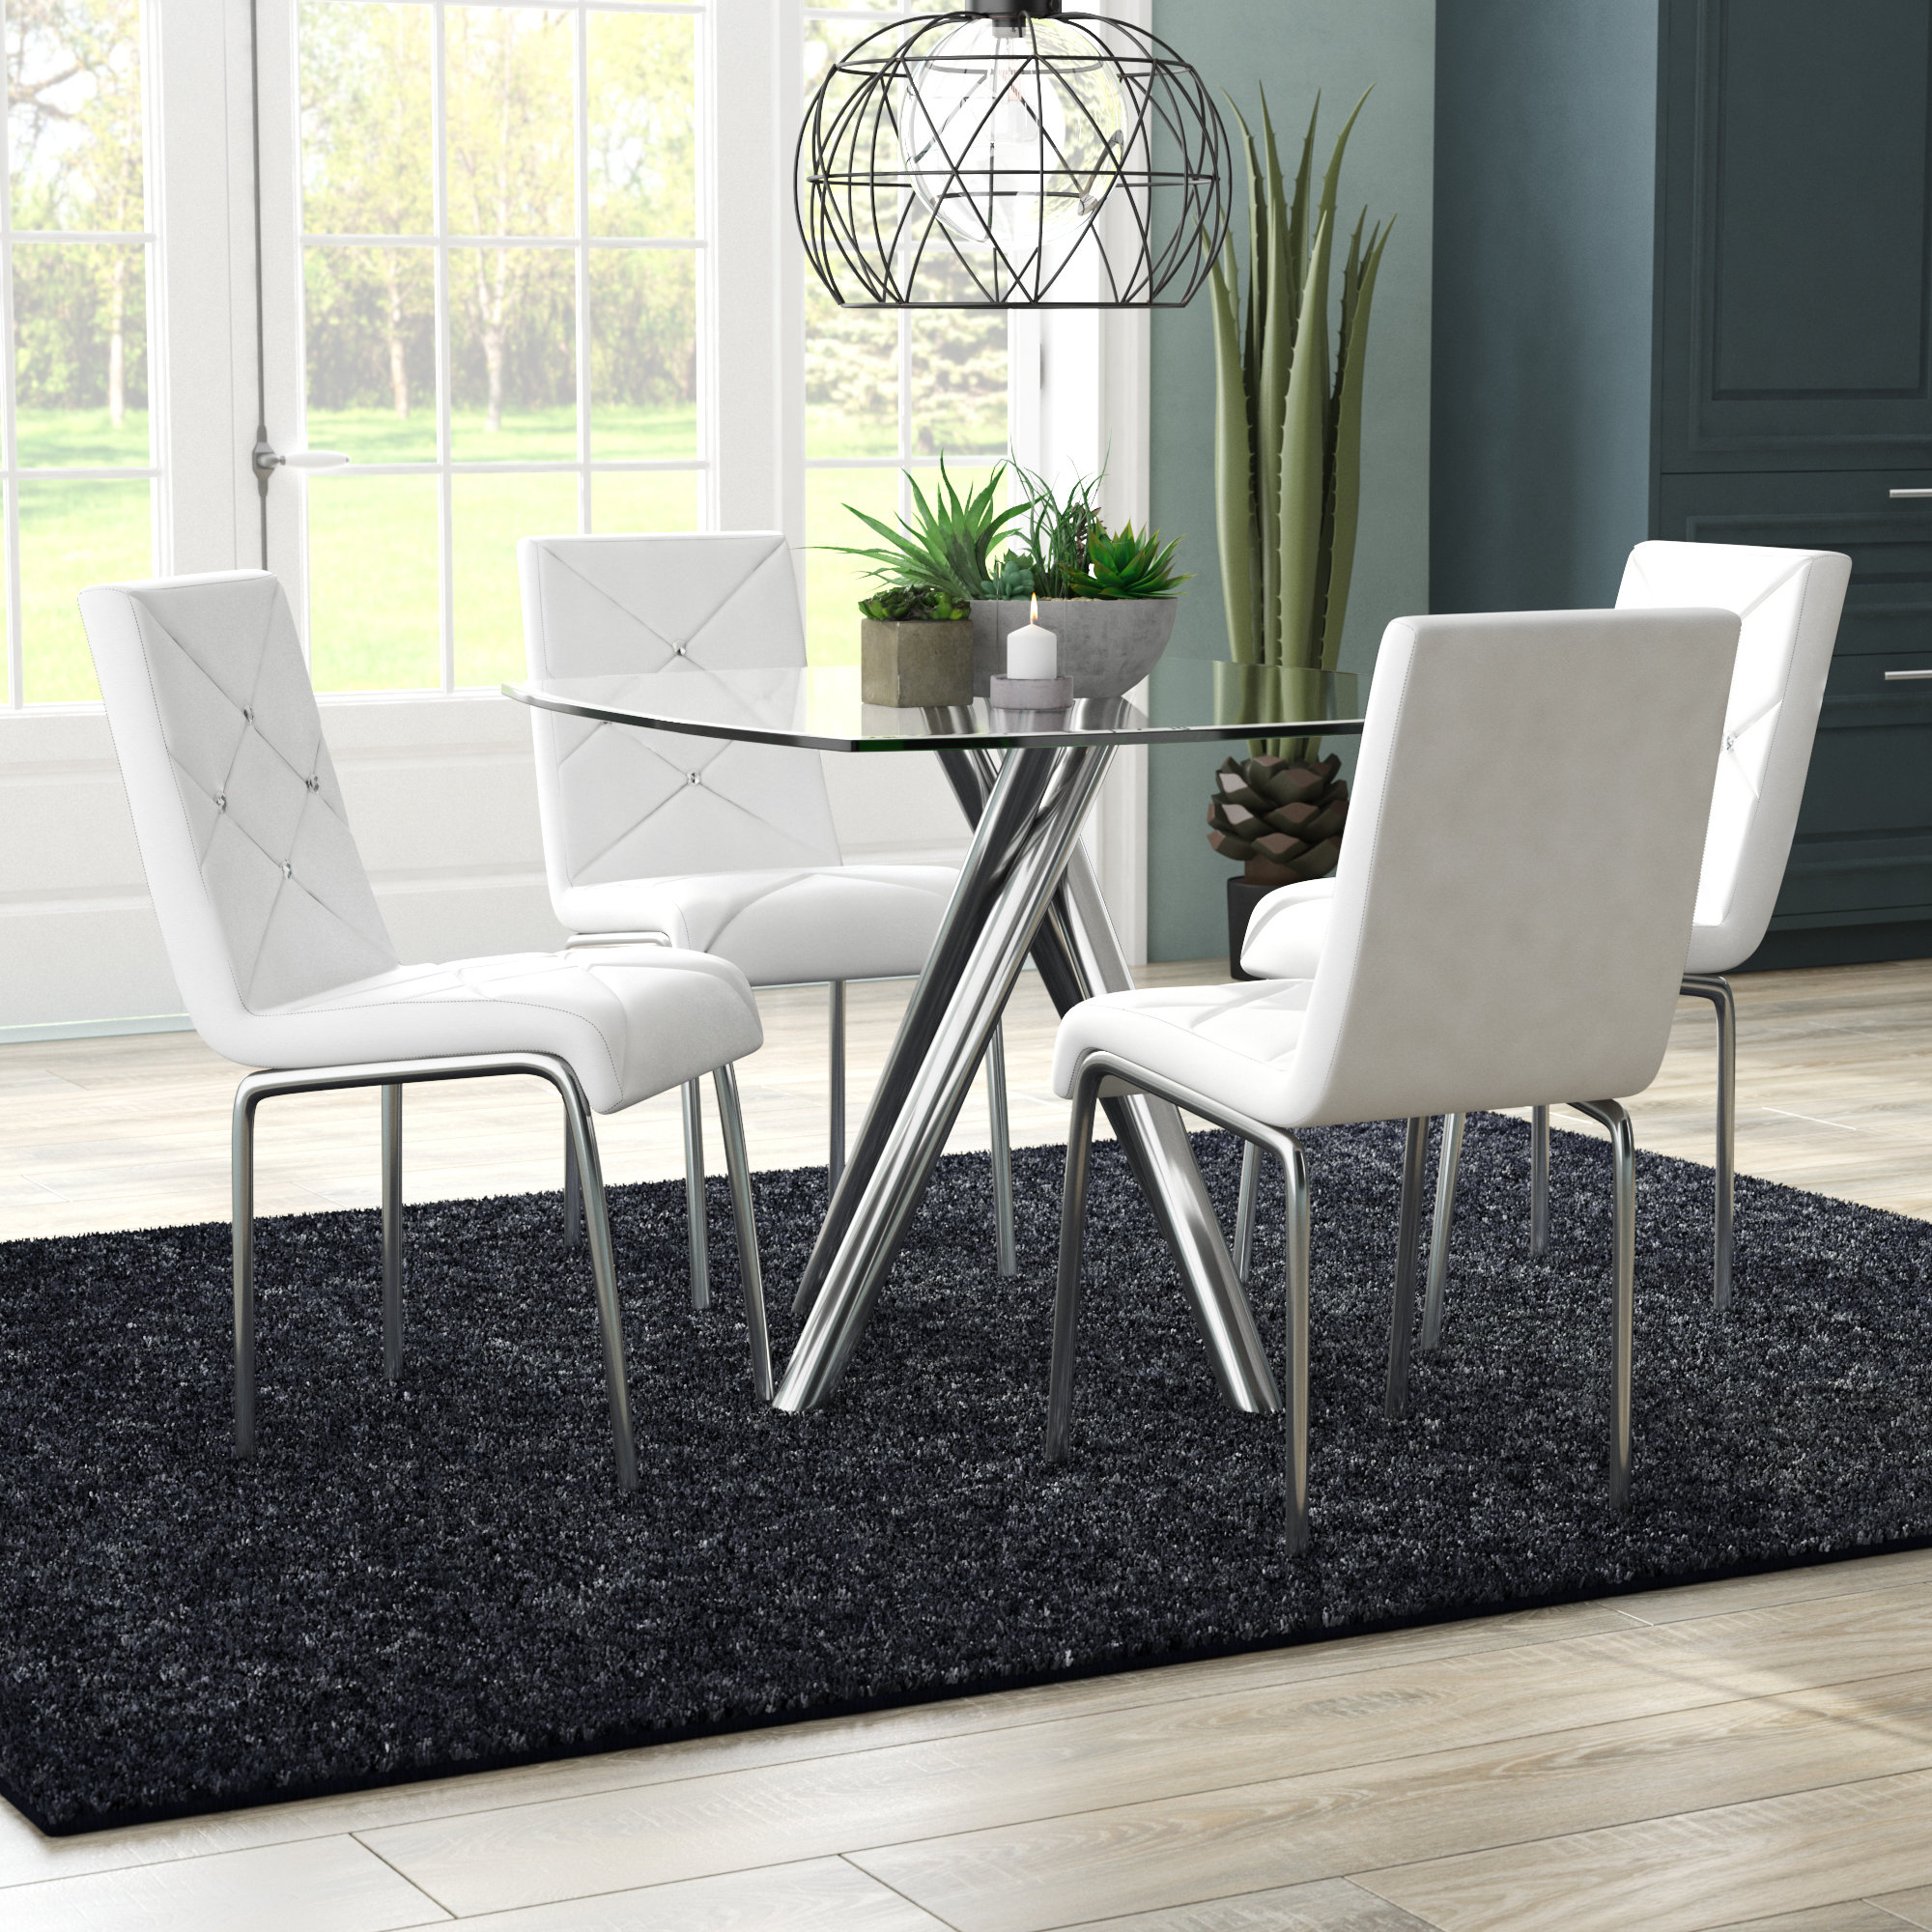 Bax 5 Piece Dining Set Intended For Best And Newest Linette 5 Piece Dining Table Sets (Image 3 of 20)